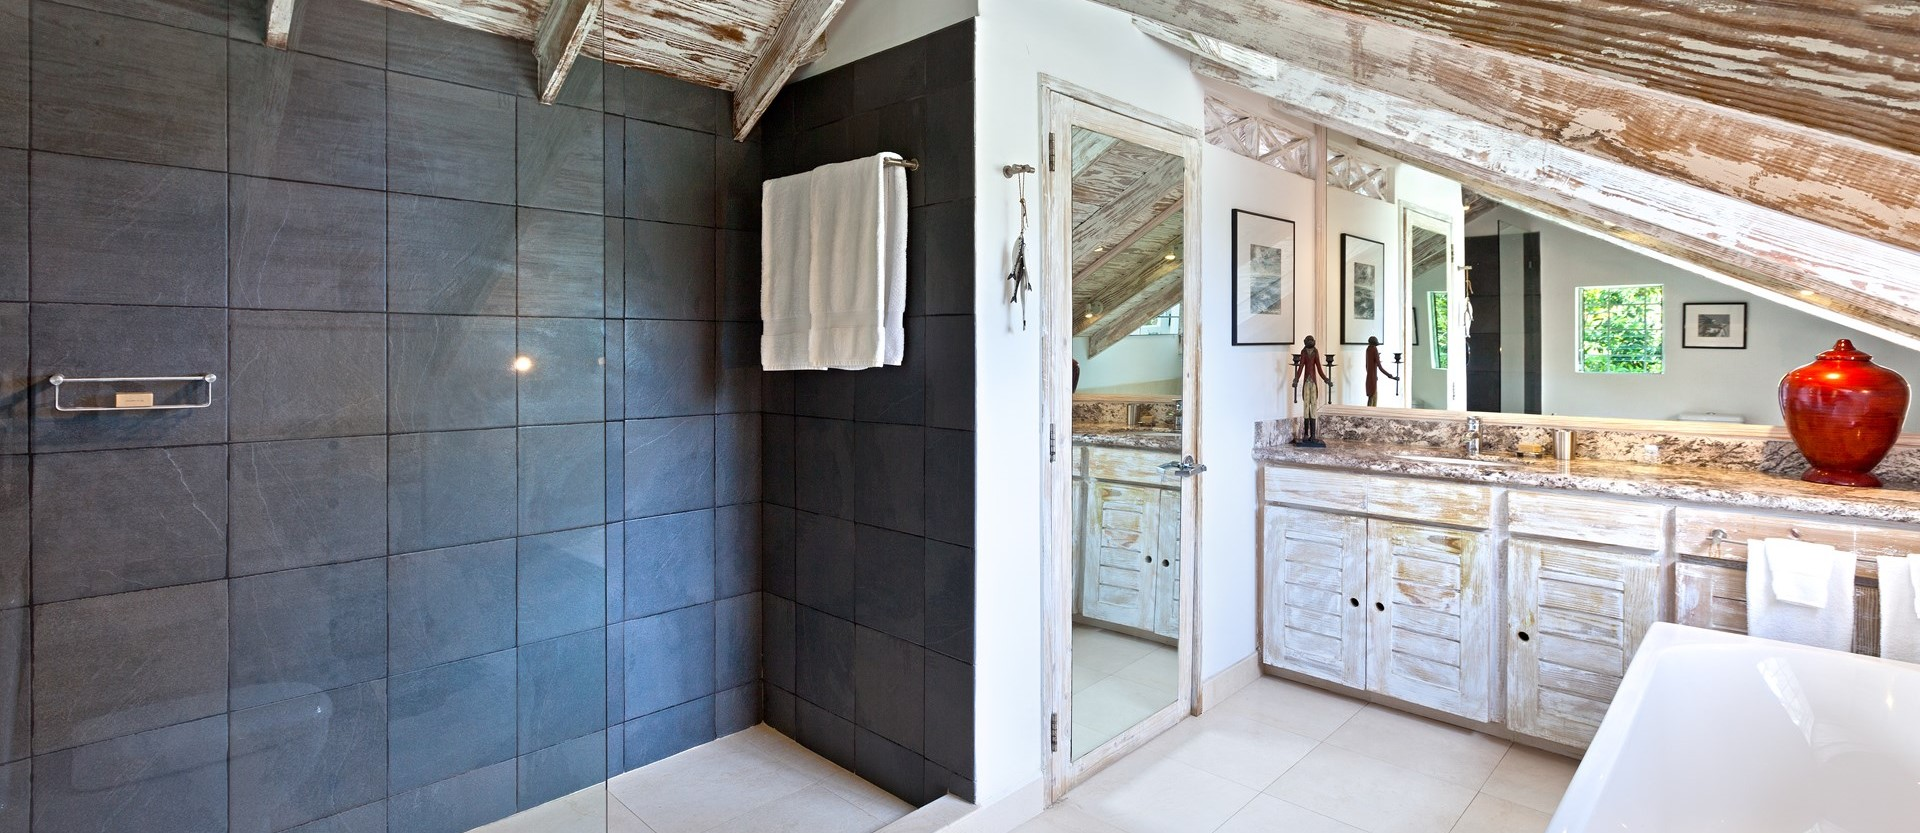 easy-reach-villa-barbados-master-bathroo